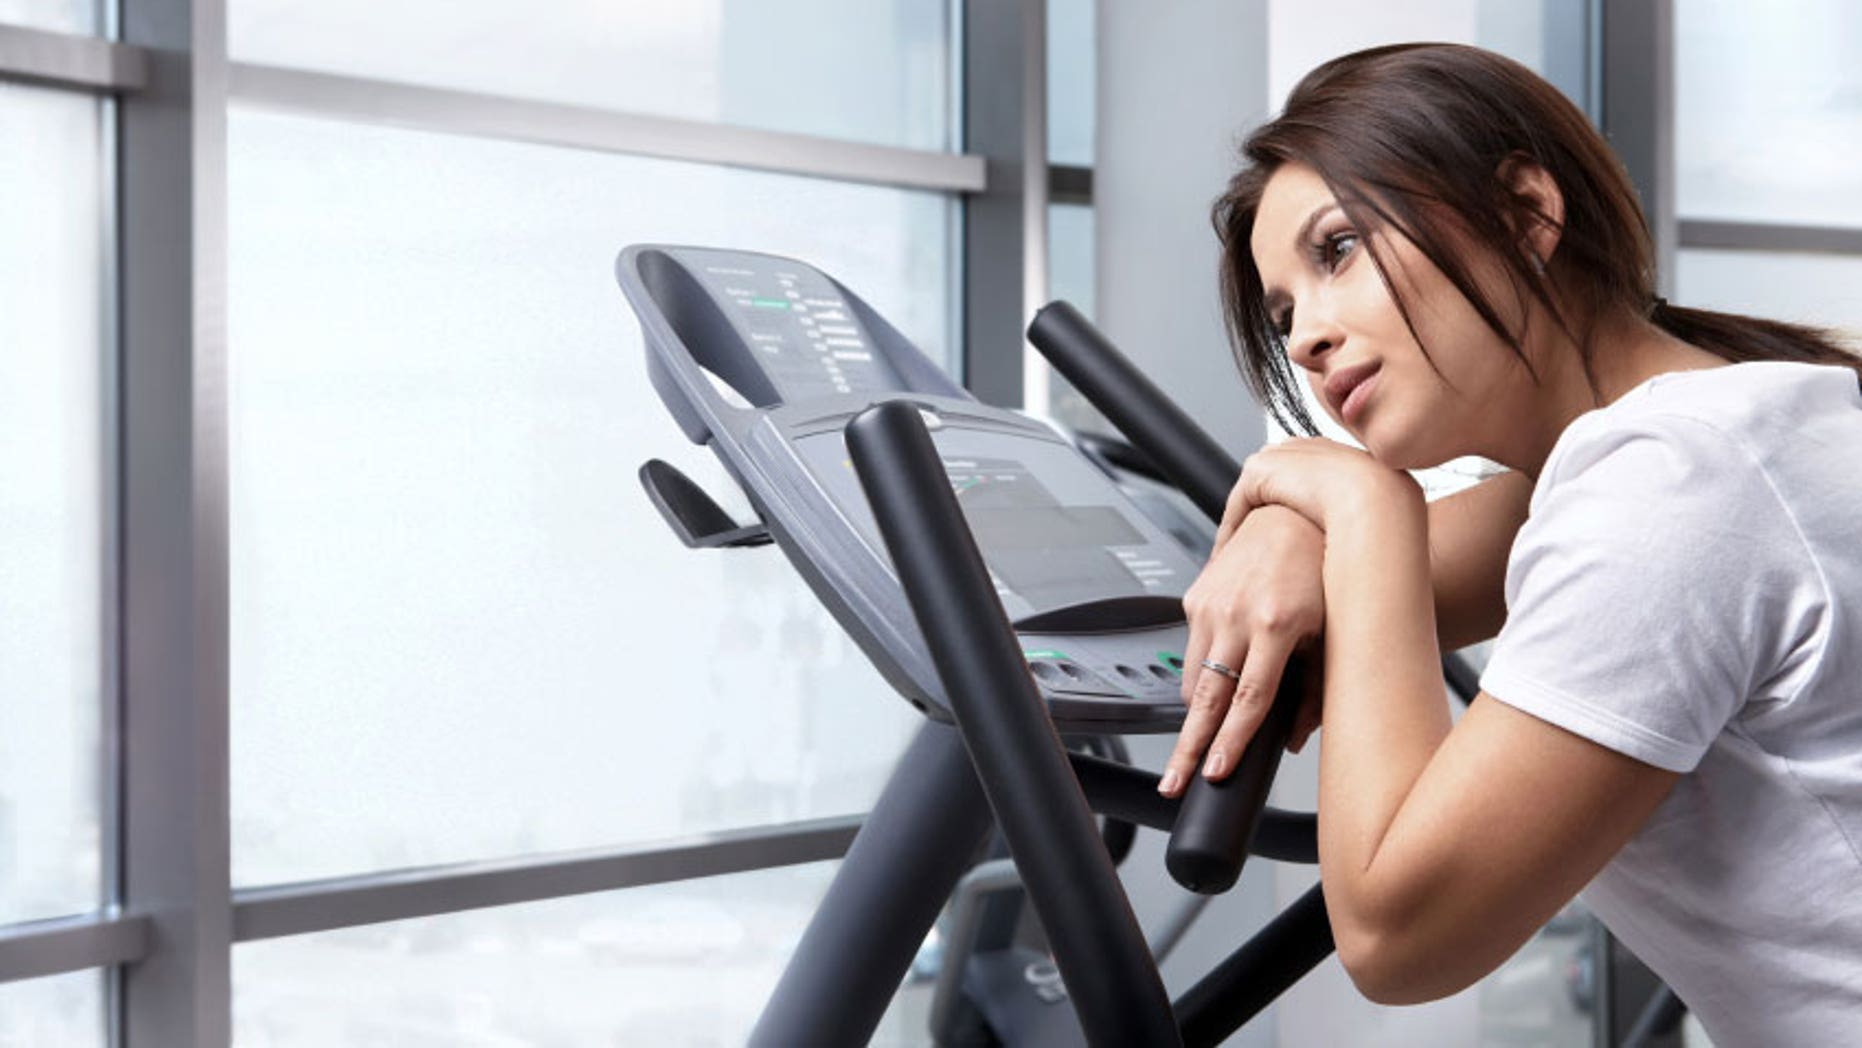 How the Gym Can Make You GAIN Weight